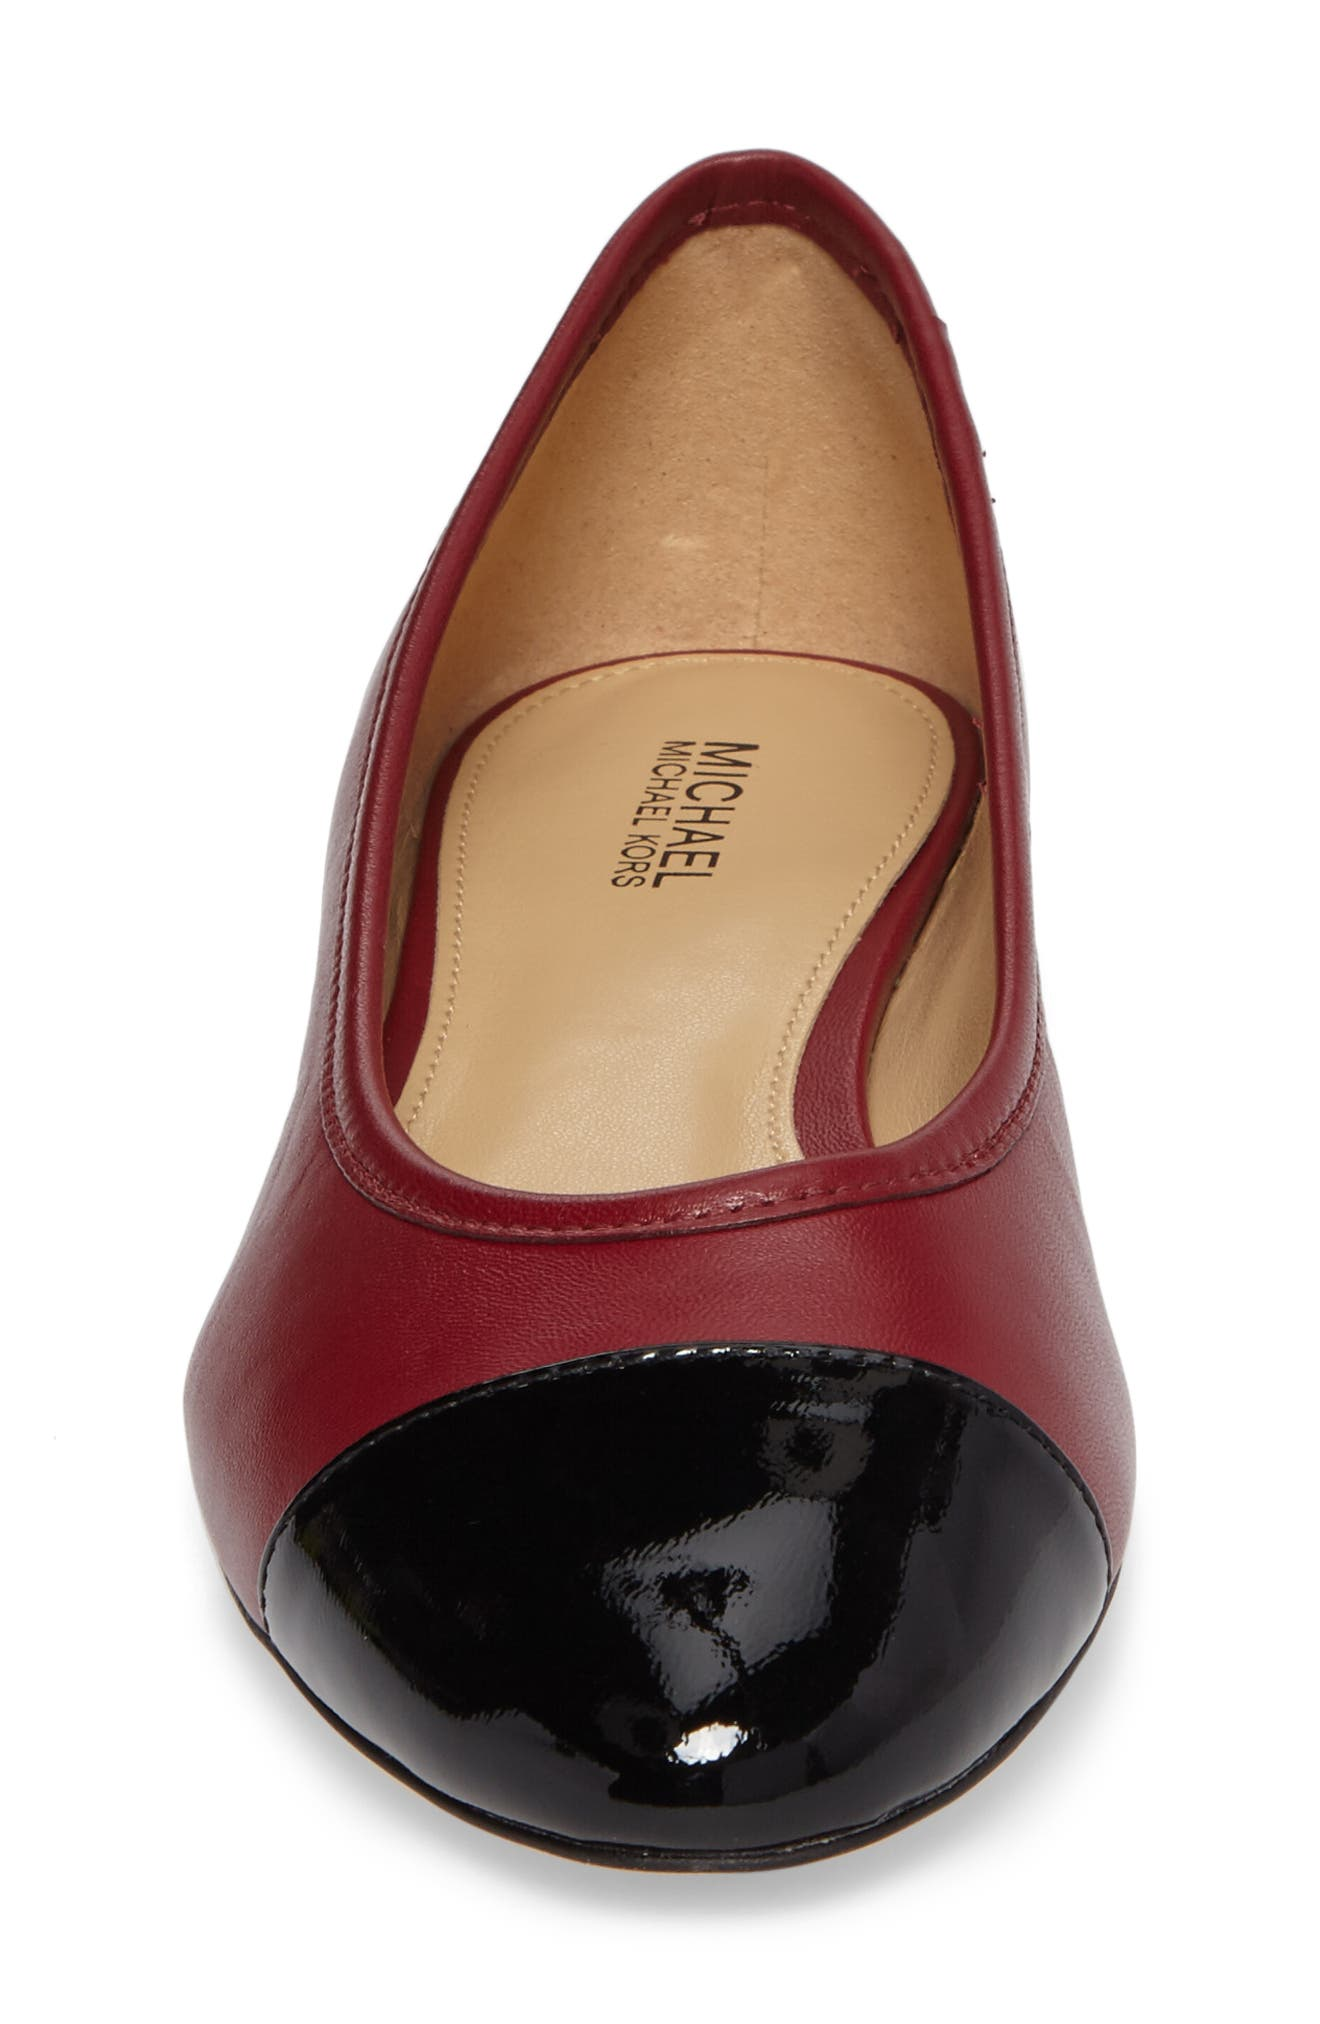 'Sabrina' Ballet Flat,                             Alternate thumbnail 3, color,                             Mulberry Patent Leather